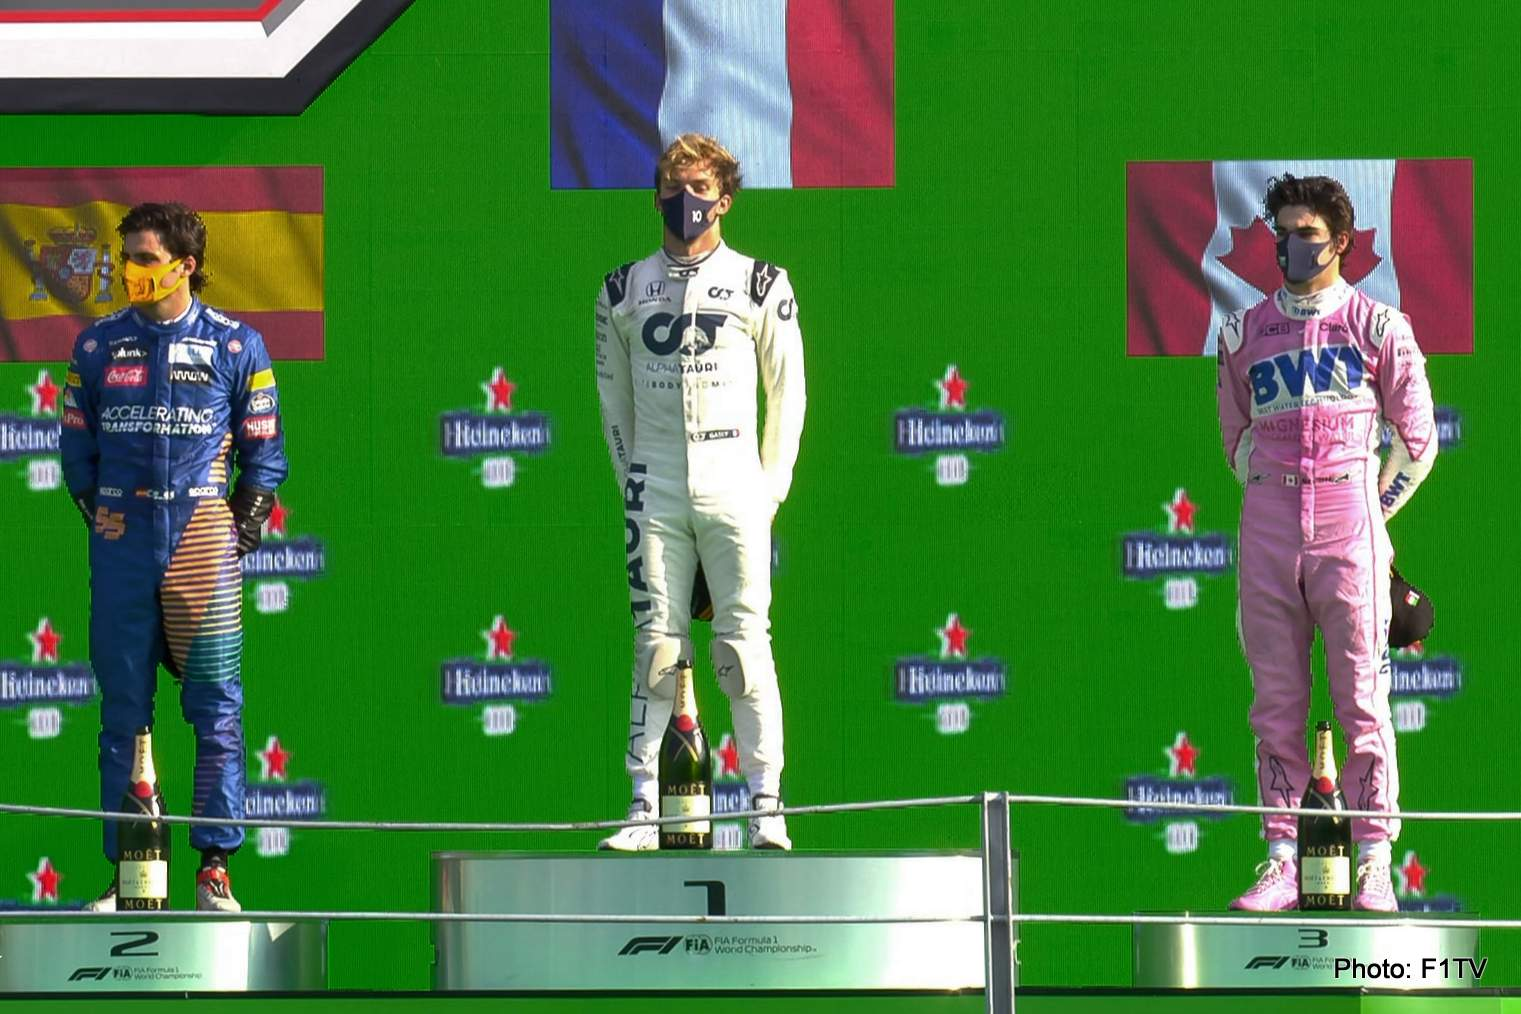 Pierre Gasly Wins F1 Italian Grand Prix 2020